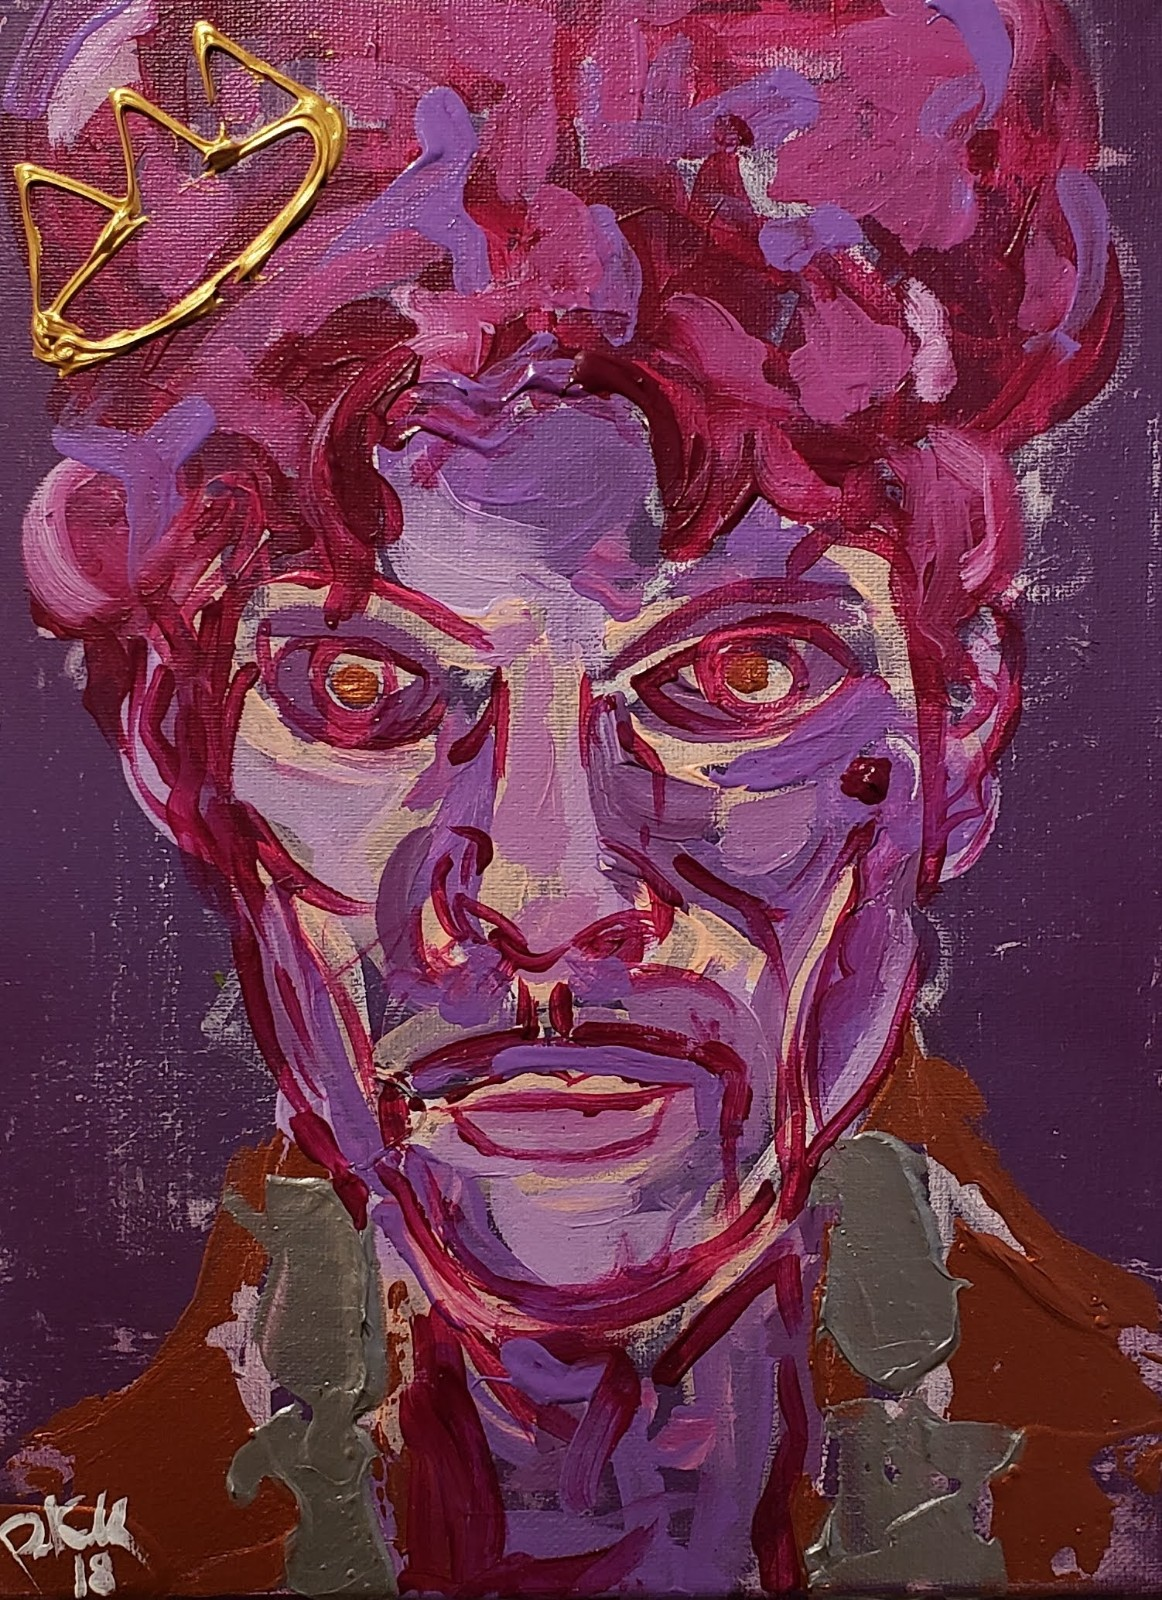 Prince / 24 x 18 / Acrylic / Spray Paint / Marker / 2018.